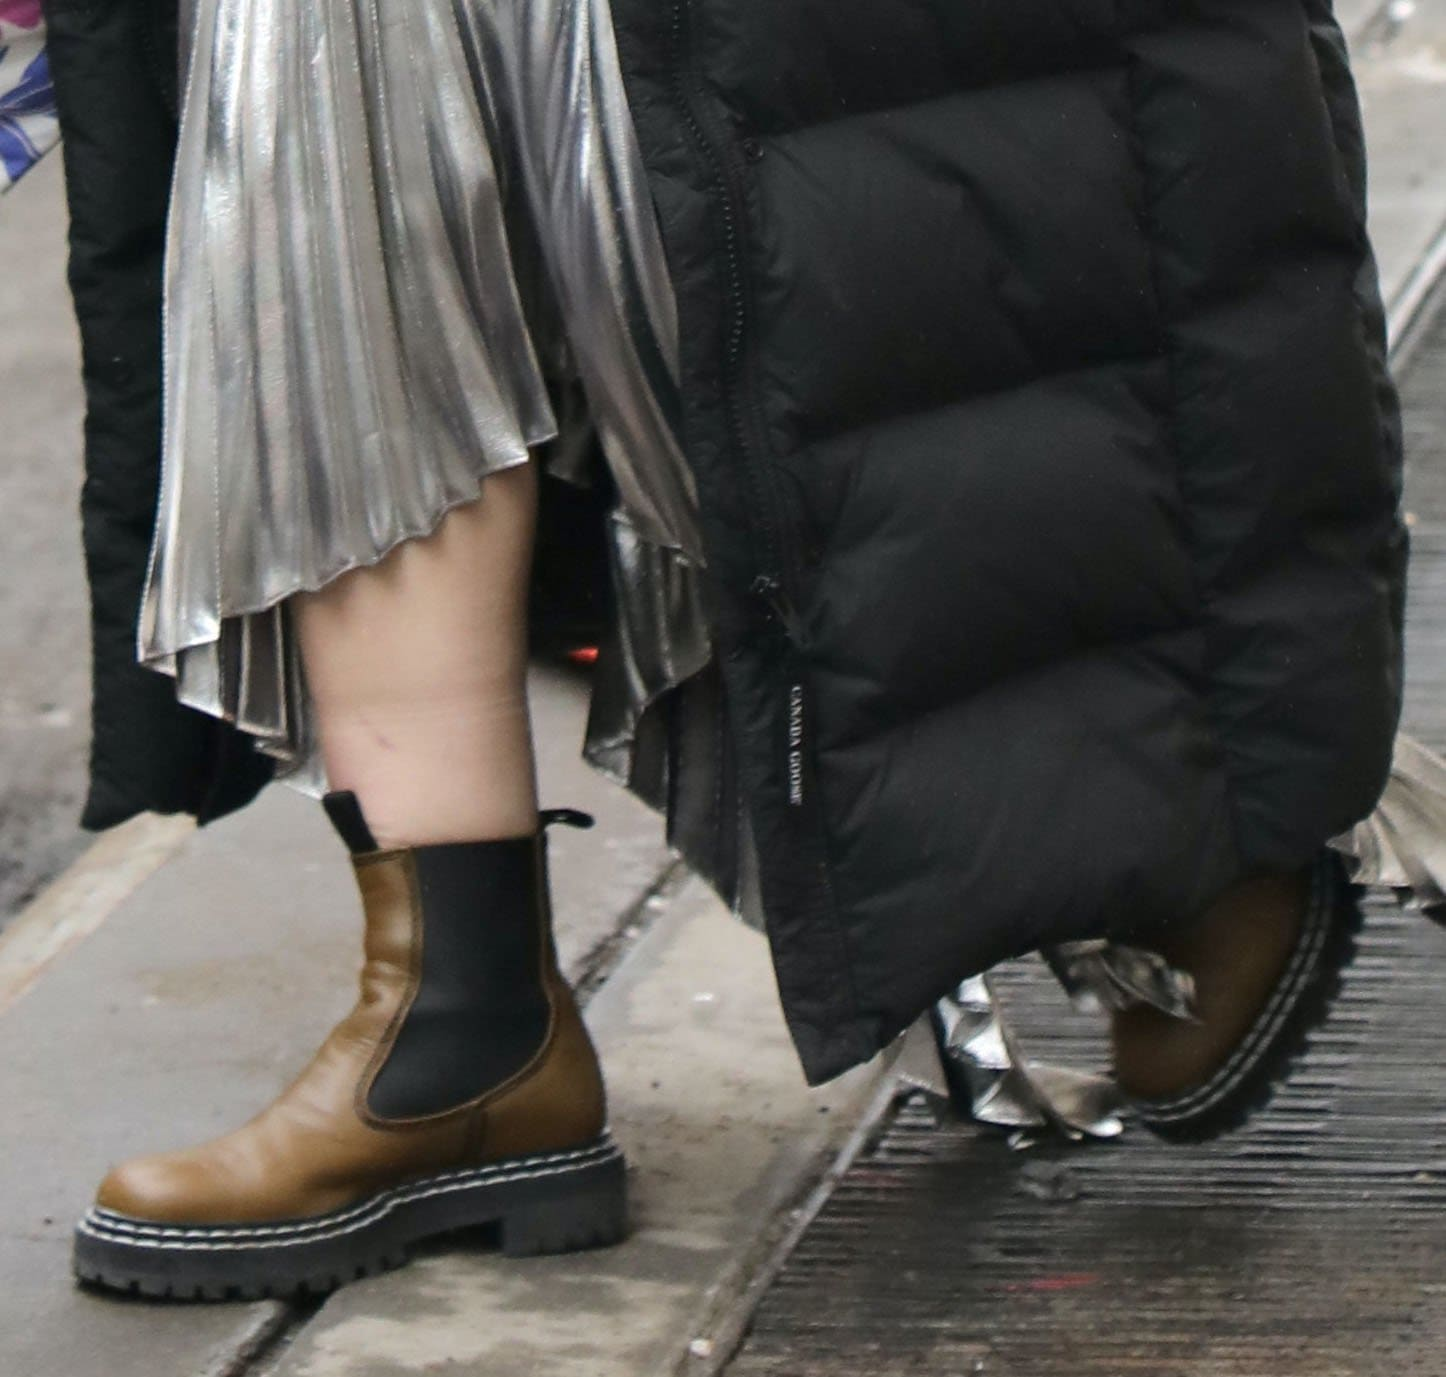 Hilary Duff teams her dress with Proenza Schouler Chelsea boots